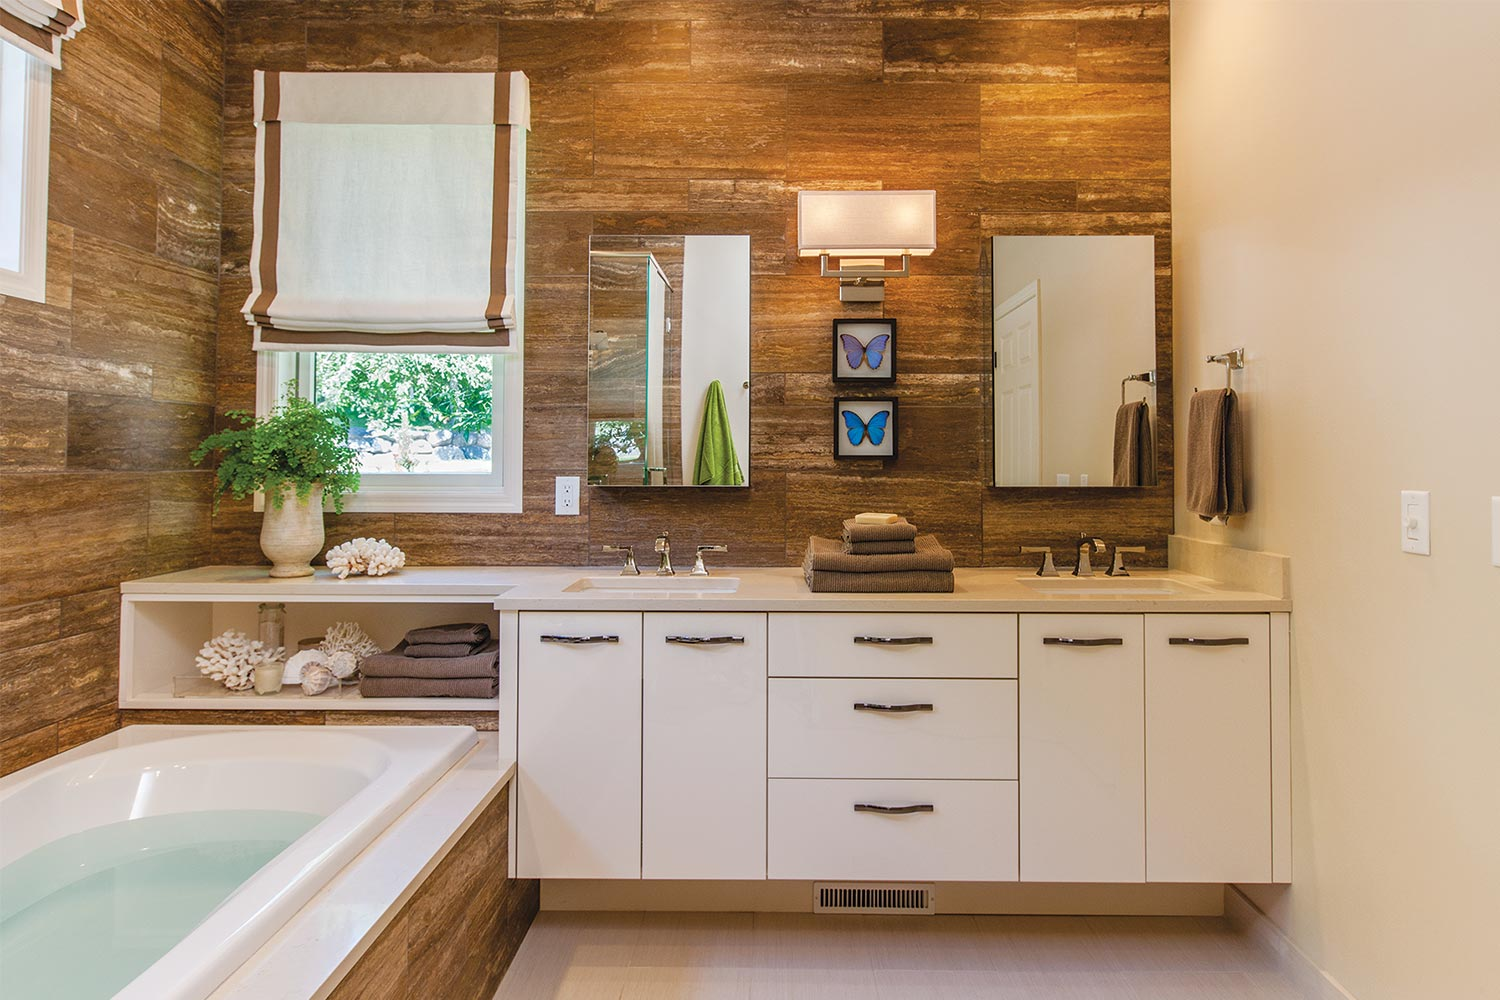 Crystal Kitchen + Bath - Midwest Home